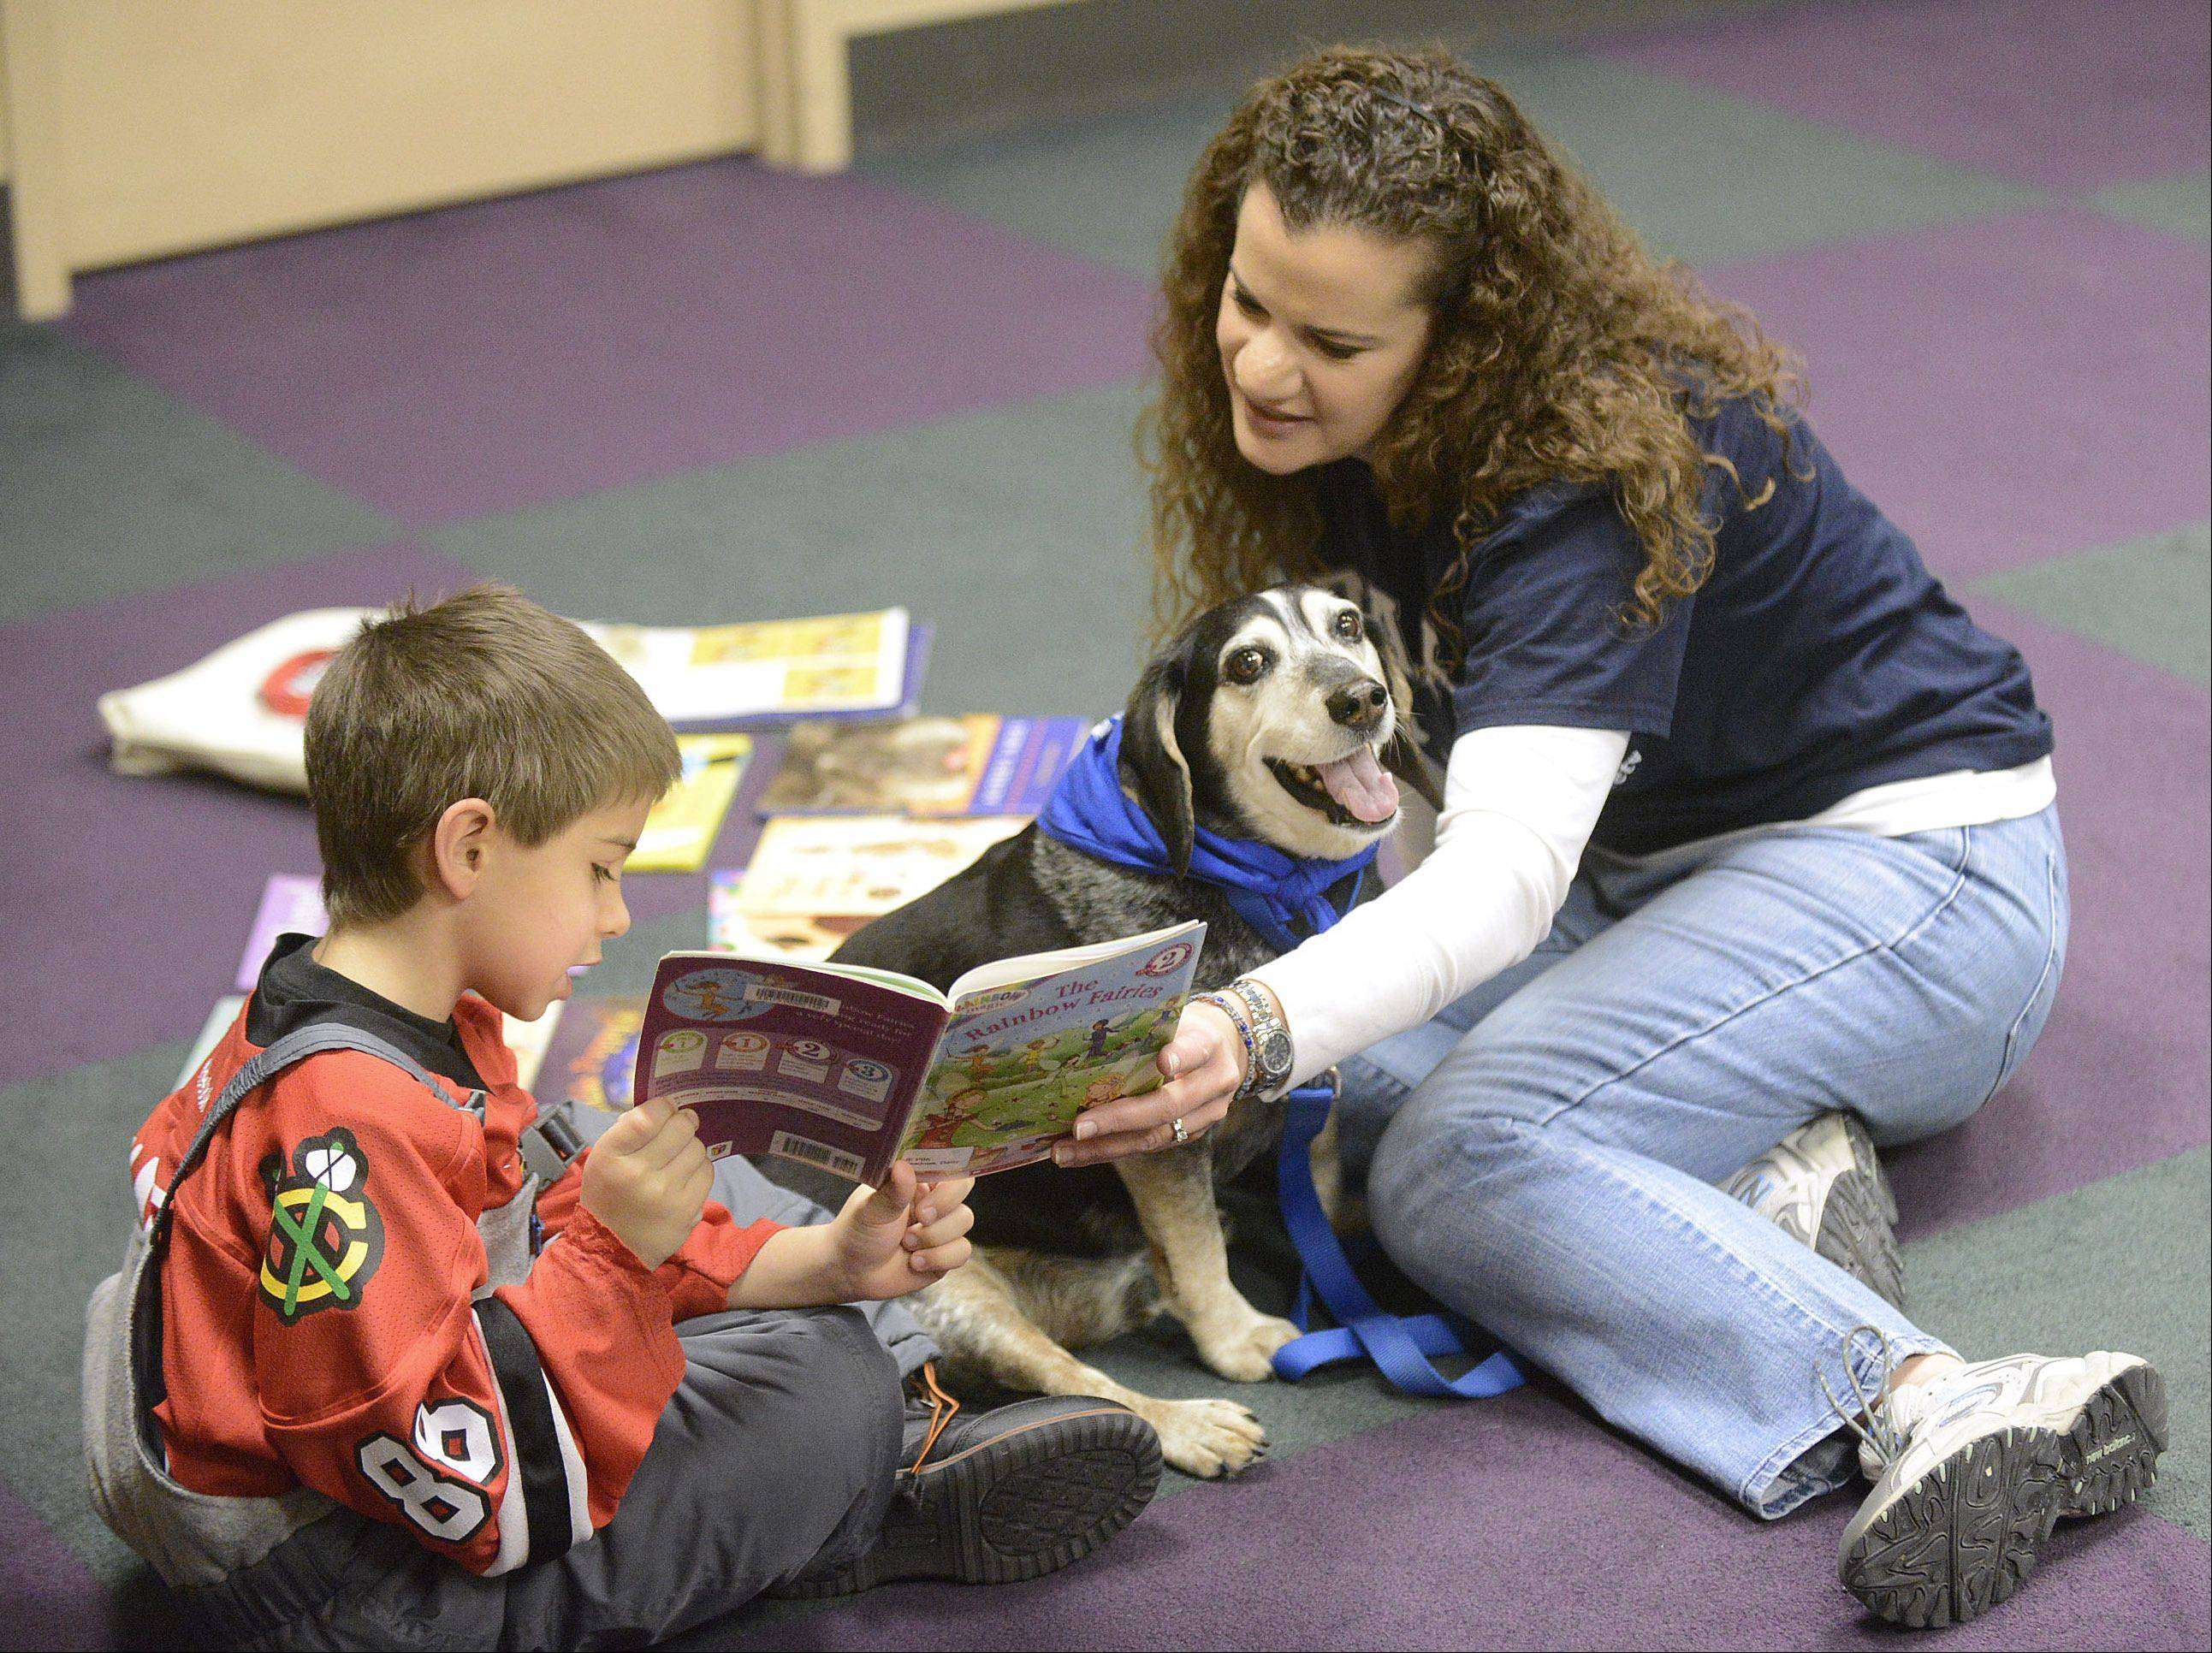 Michael Stark, 6, of Batavia reads to therapy dog, Cisco, 10, with help from Cisco's owner, Terri Hancock, during the Paws for Tales reading program at Batavia Public Library on Saturday. Hancock is the Humane Education Manager for the Naperville Area Humane Society and brings the program to 16 locations in the suburbs.